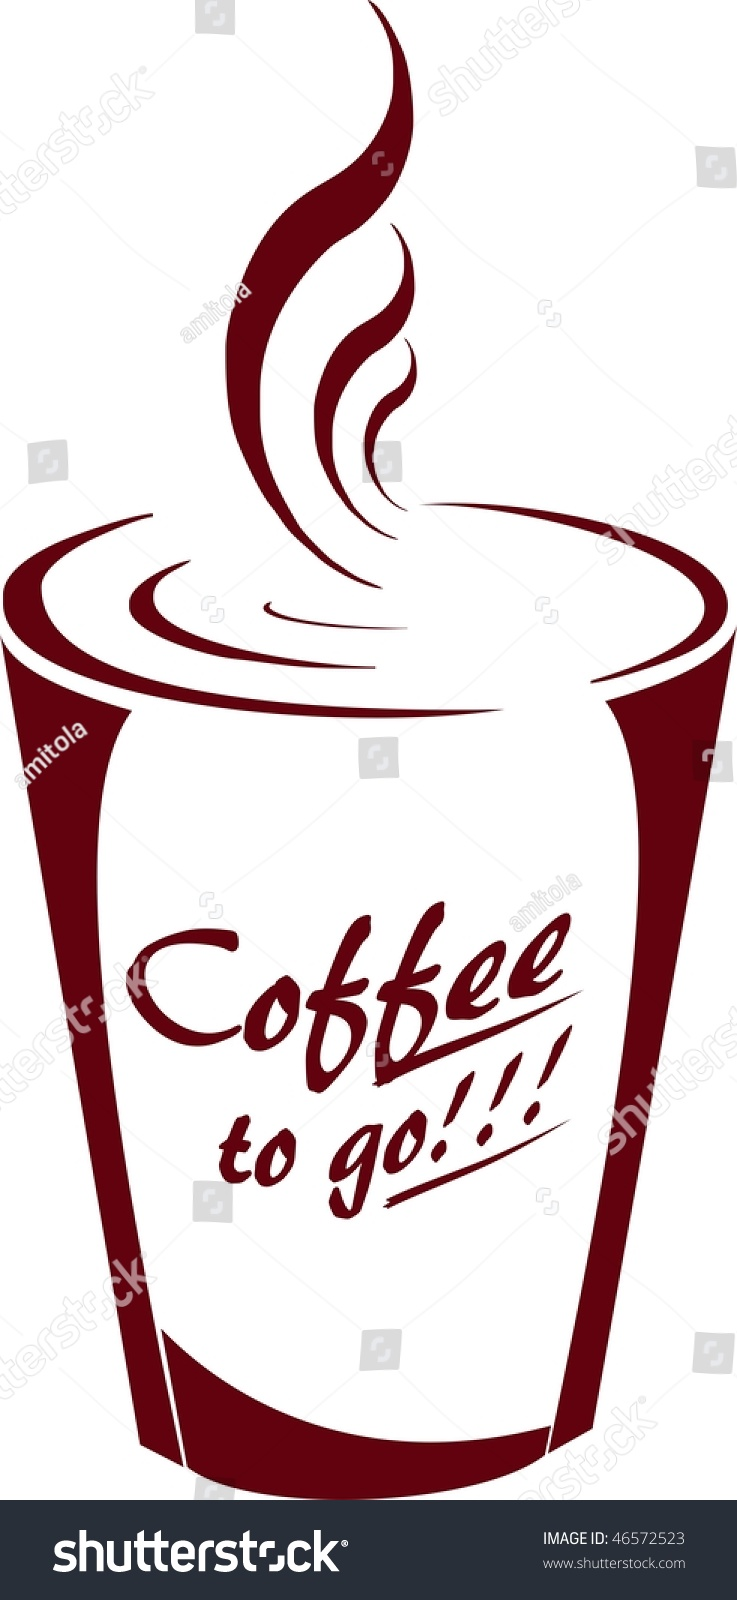 Coffee to go stock foto 46572523 shutterstock for Coffee to go